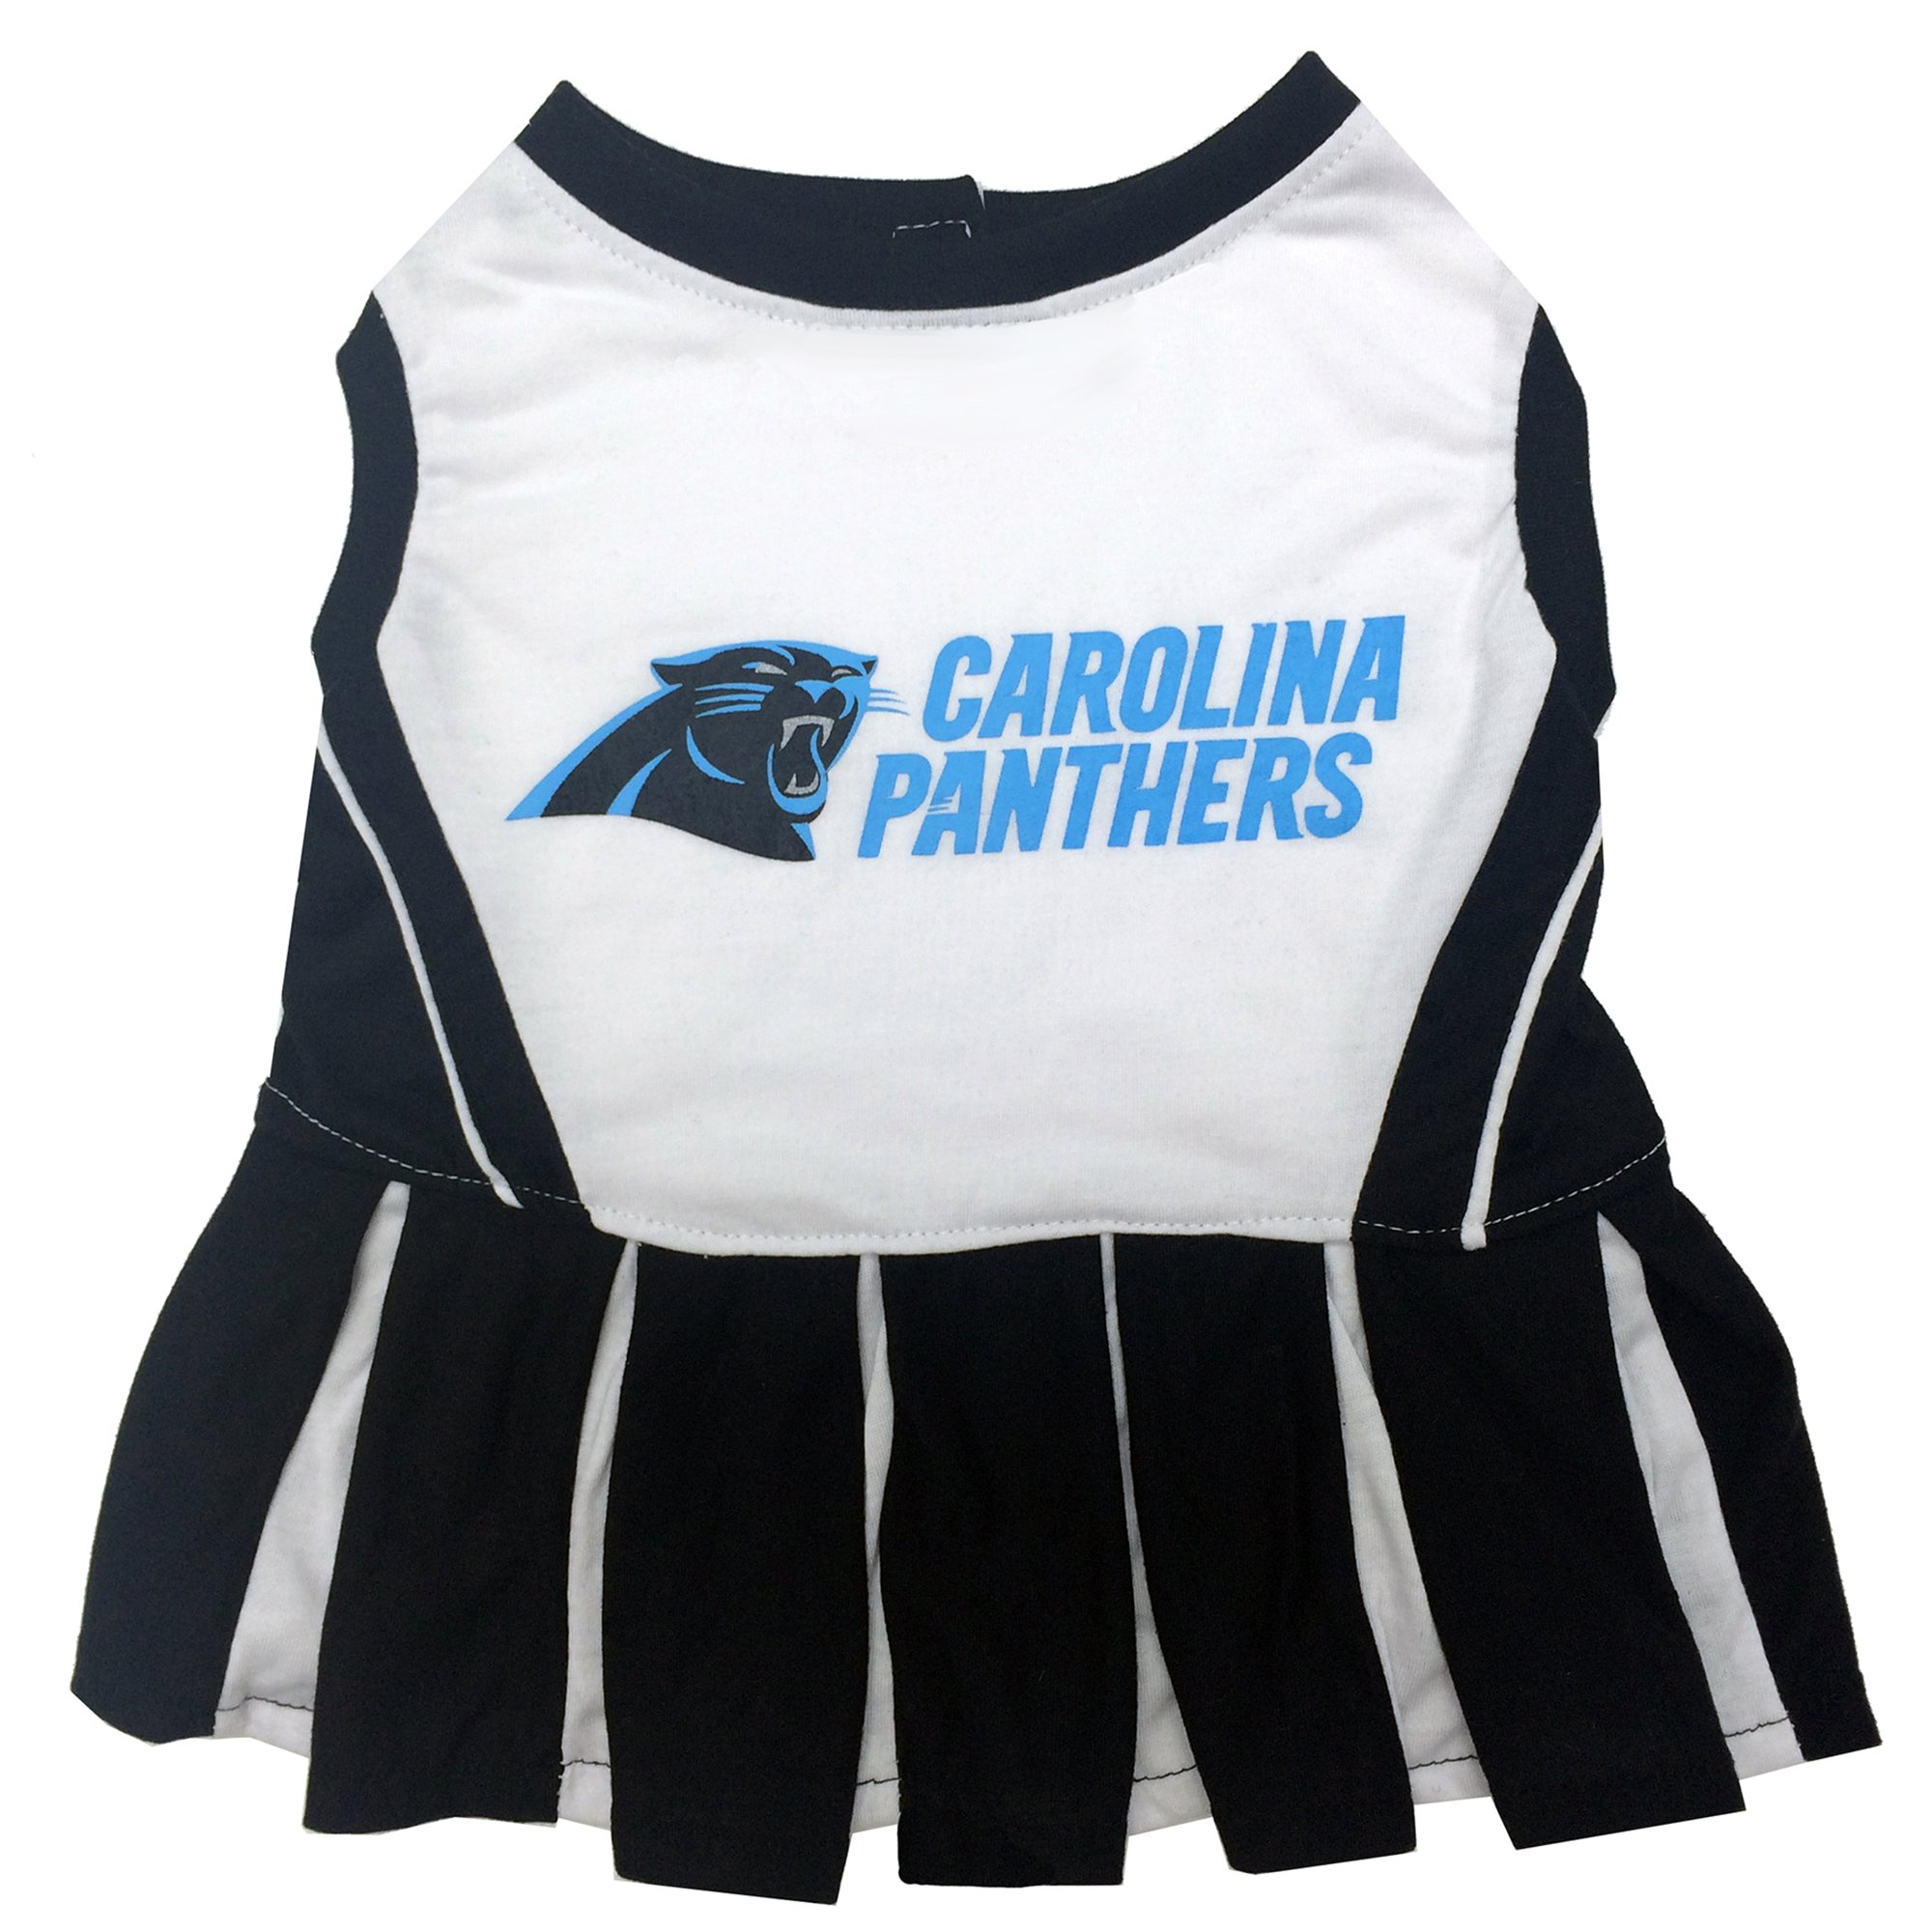 Pets First Carolina Panthers NFL Cheerleader Outfit  9541635a4